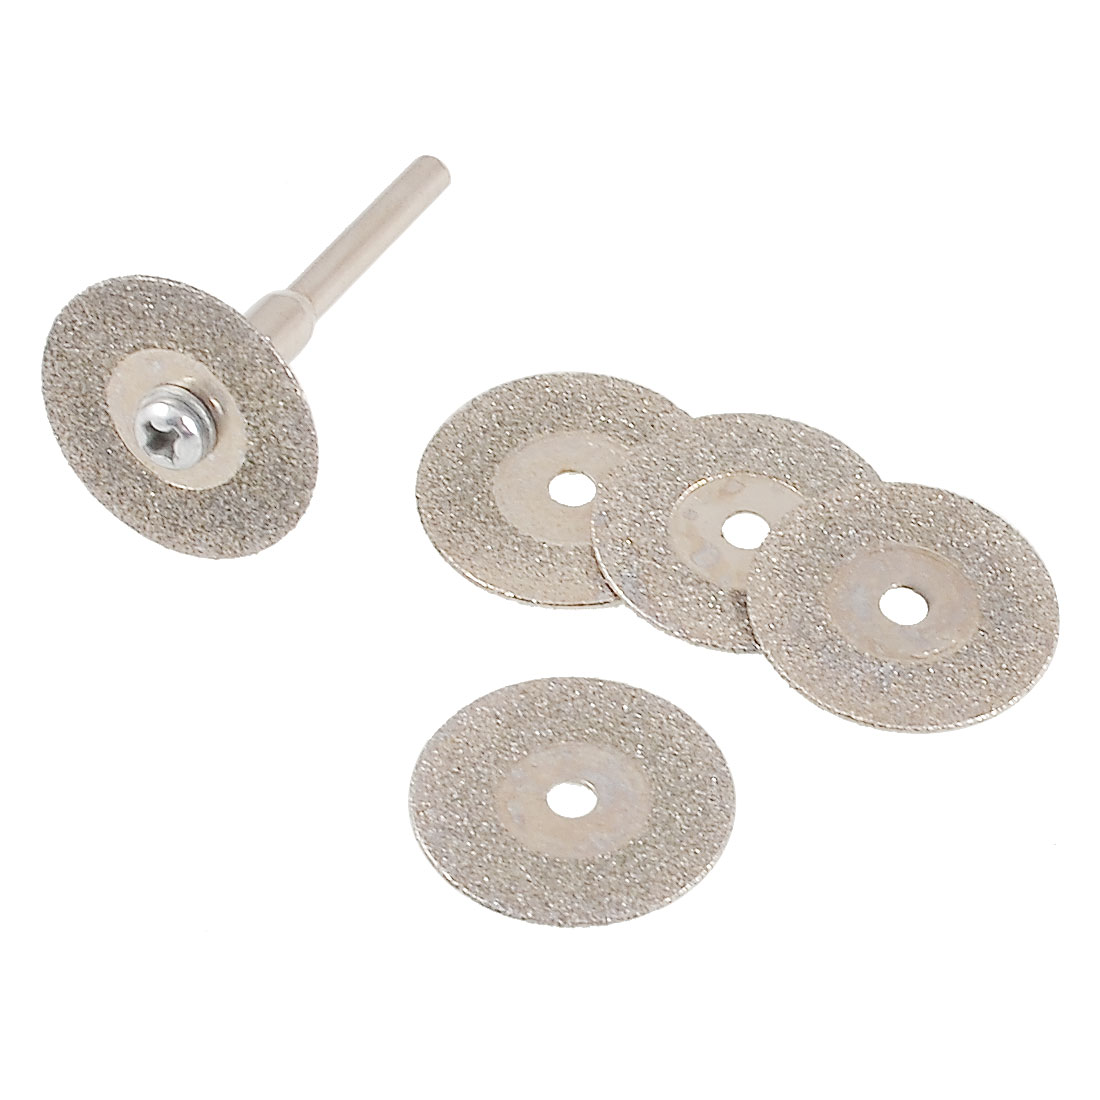 20mm Dia Mini Electric Grinder Abrasive Cutter Wheel 5 Pcs w Connector